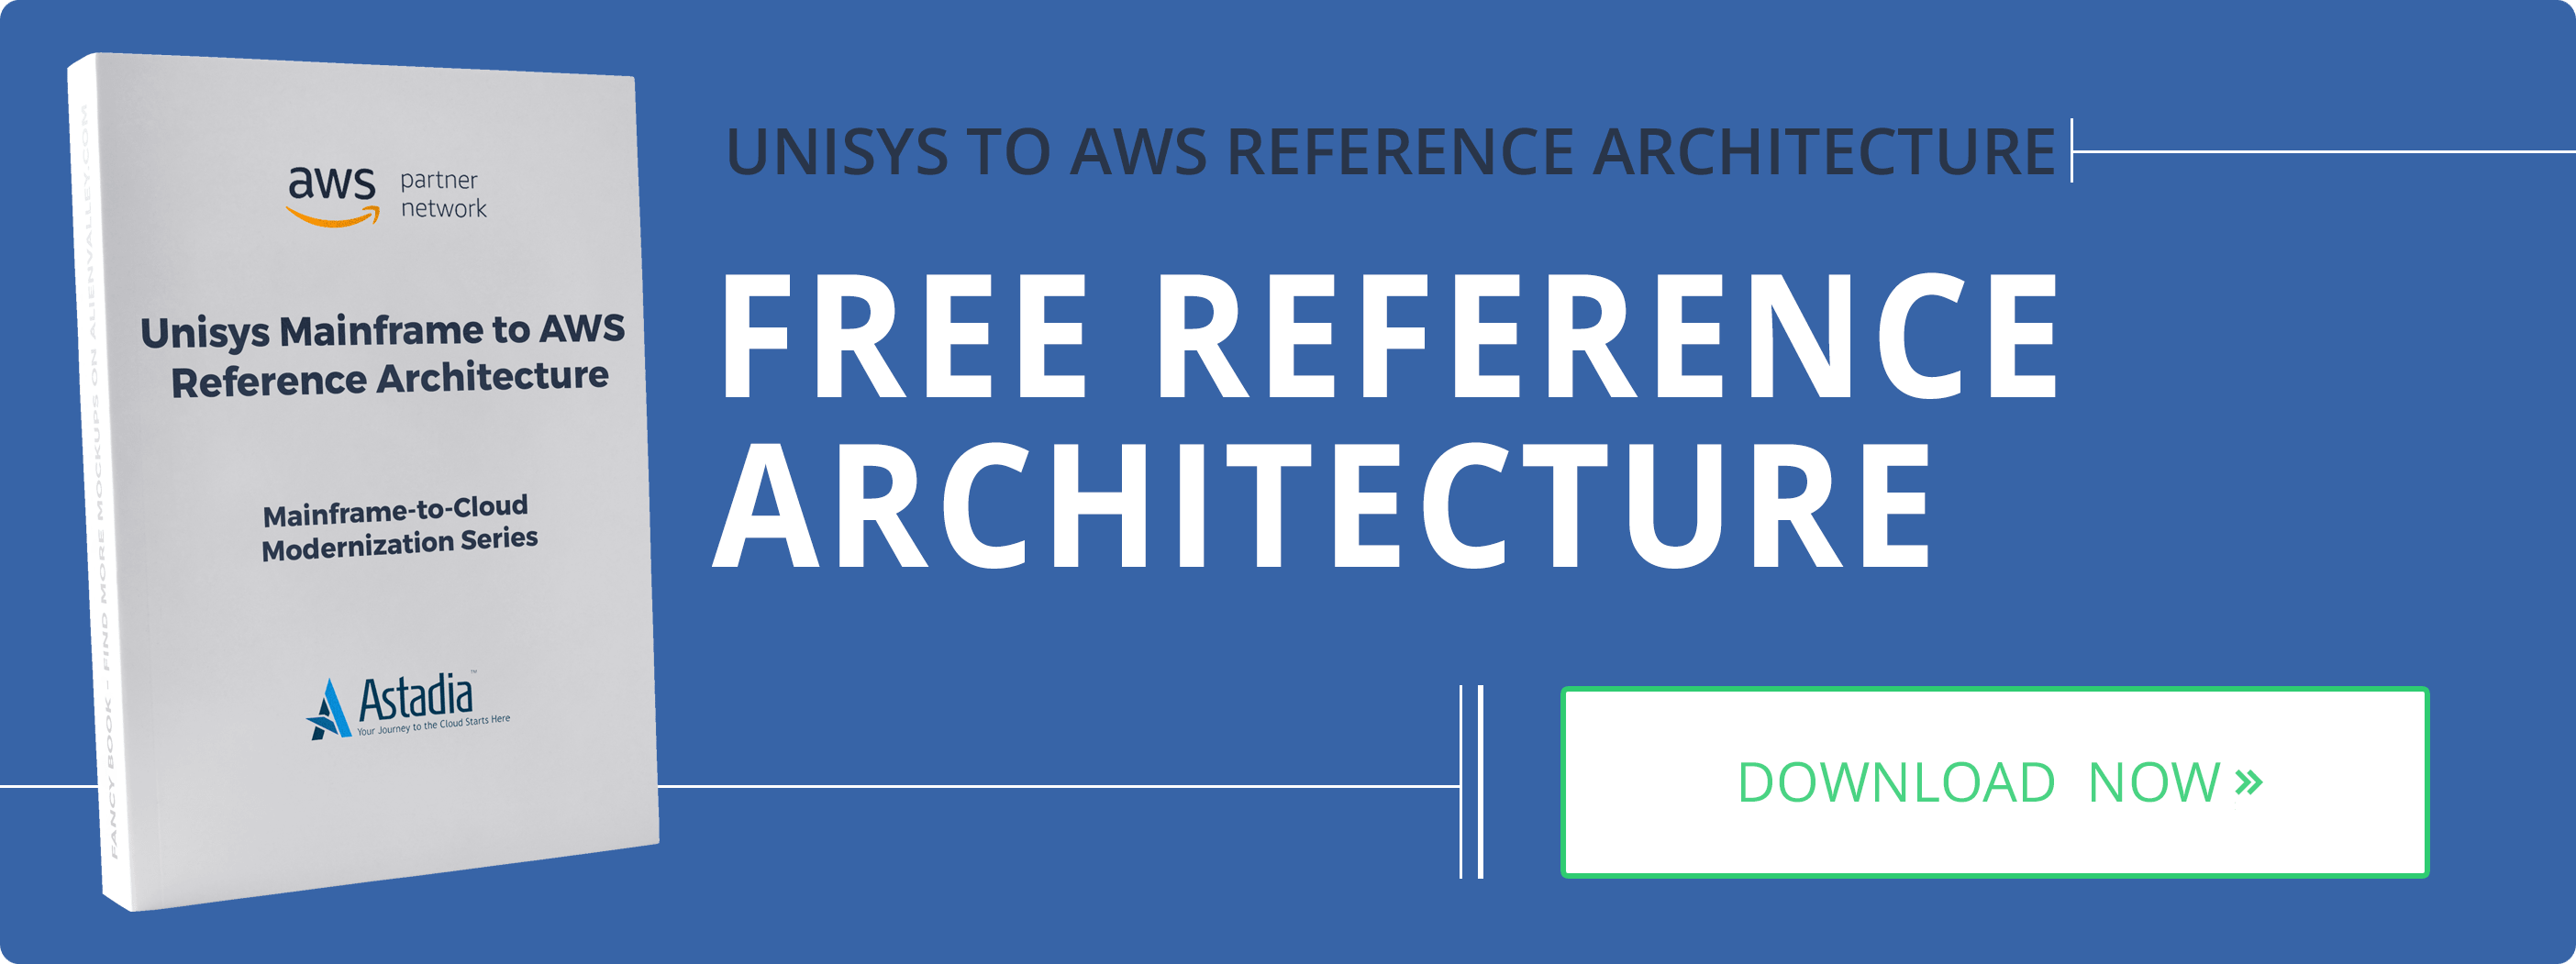 unisys mainframe to aws cloud reference architecture